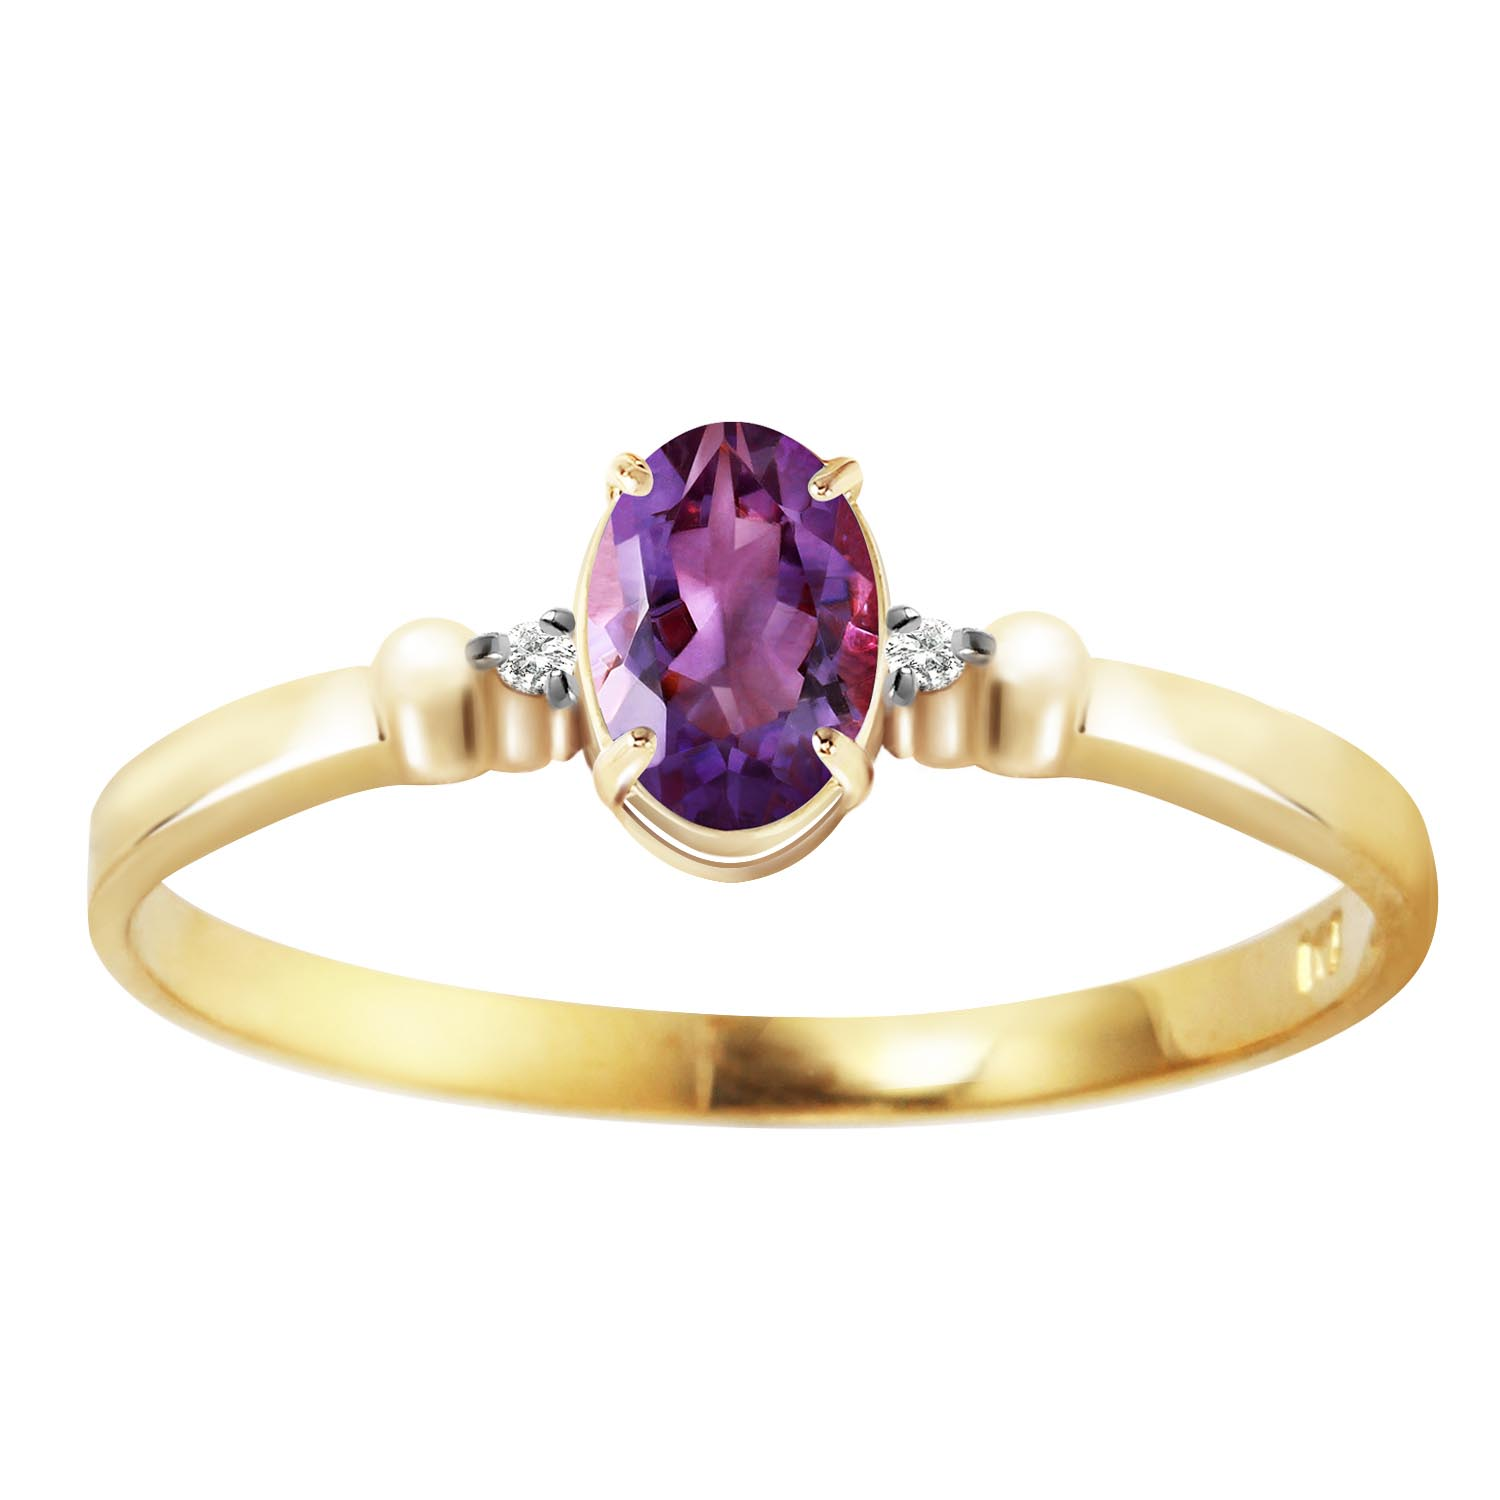 Stockists of Amethyst and Diamond Allure Ring 0.45ct in 9ct Gold